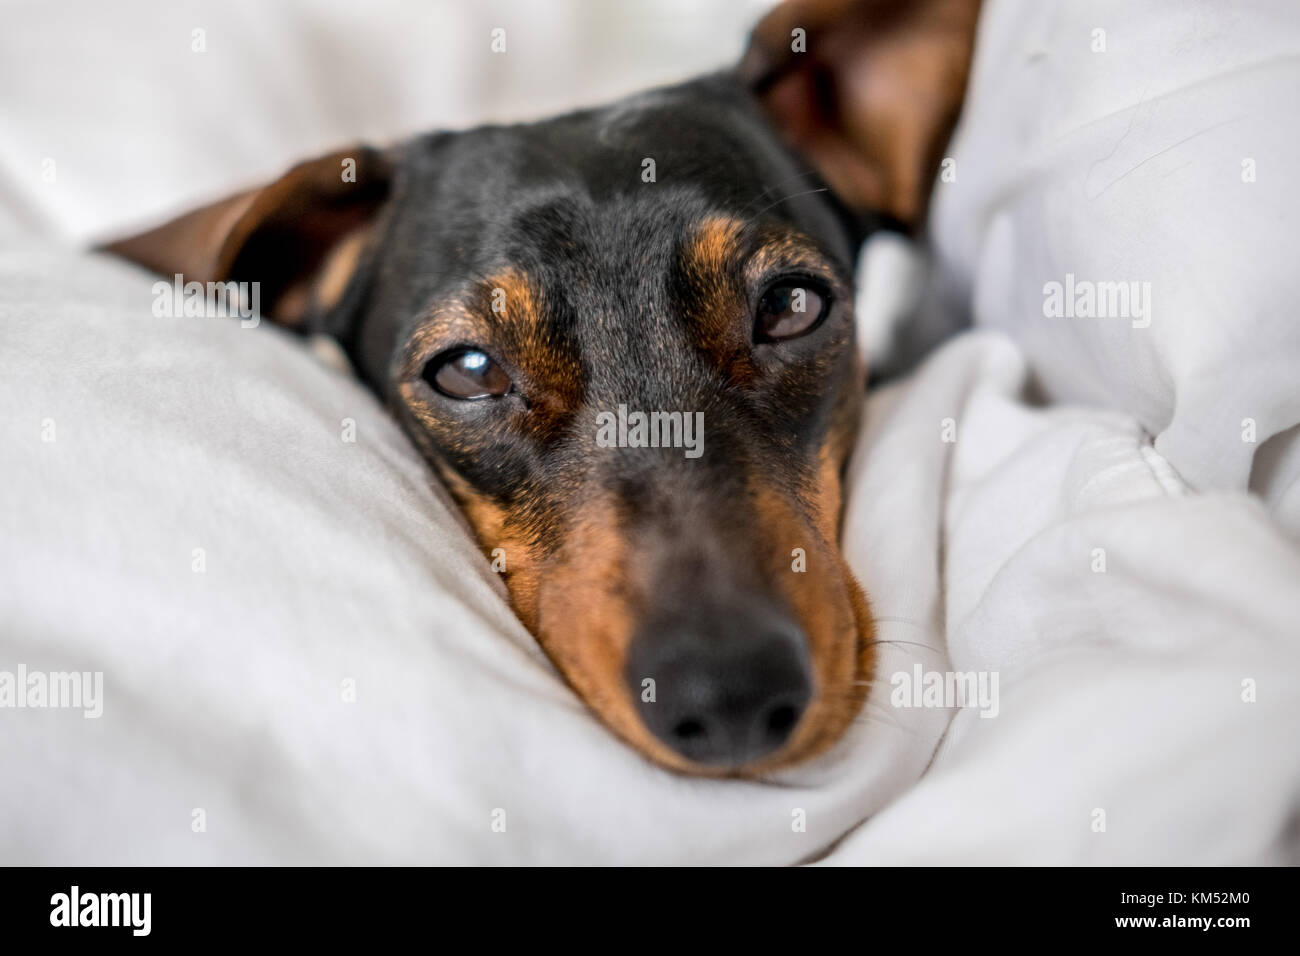 Black and tan miniature dachshund pet dog asleep in bed - Stock Image